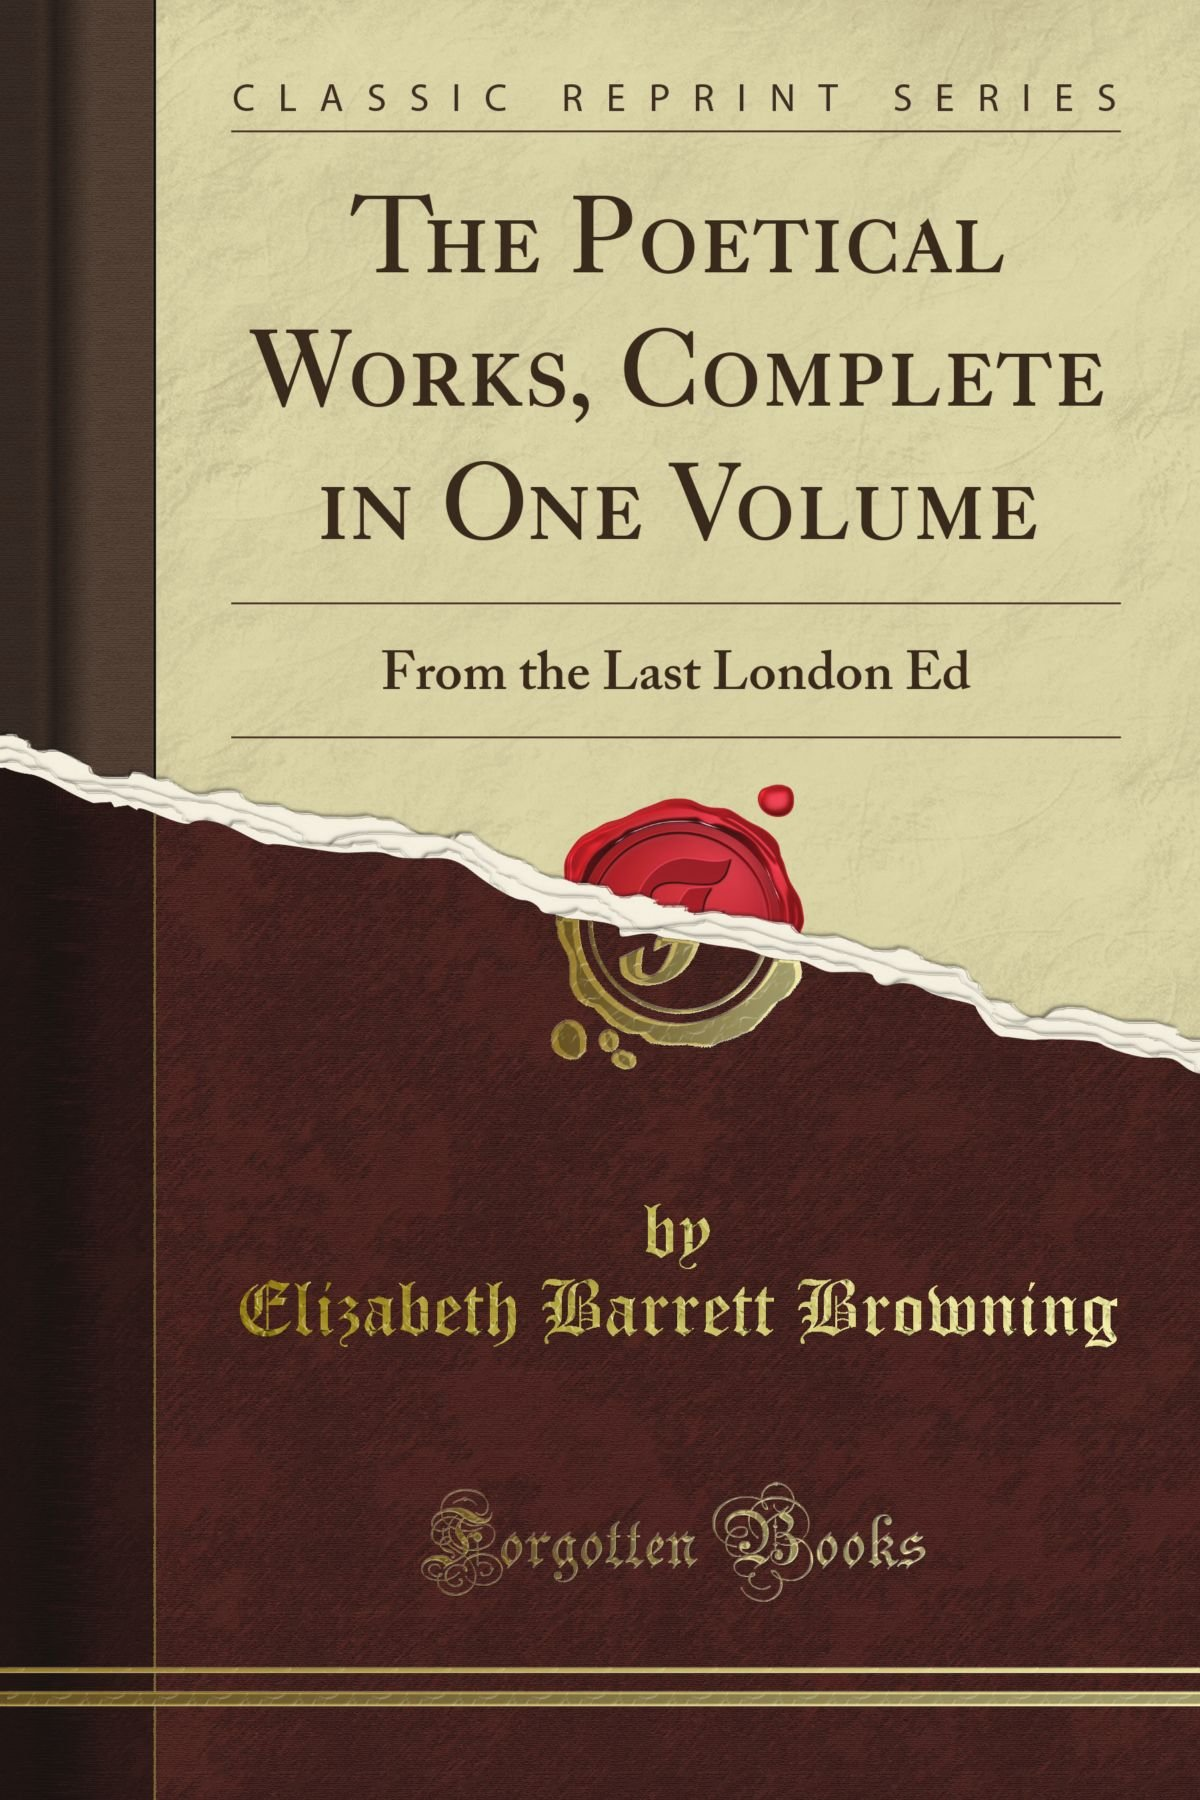 Read Online The Poetical Works, Complete in One Volume: From the Last London Ed (Classic Reprint) ebook